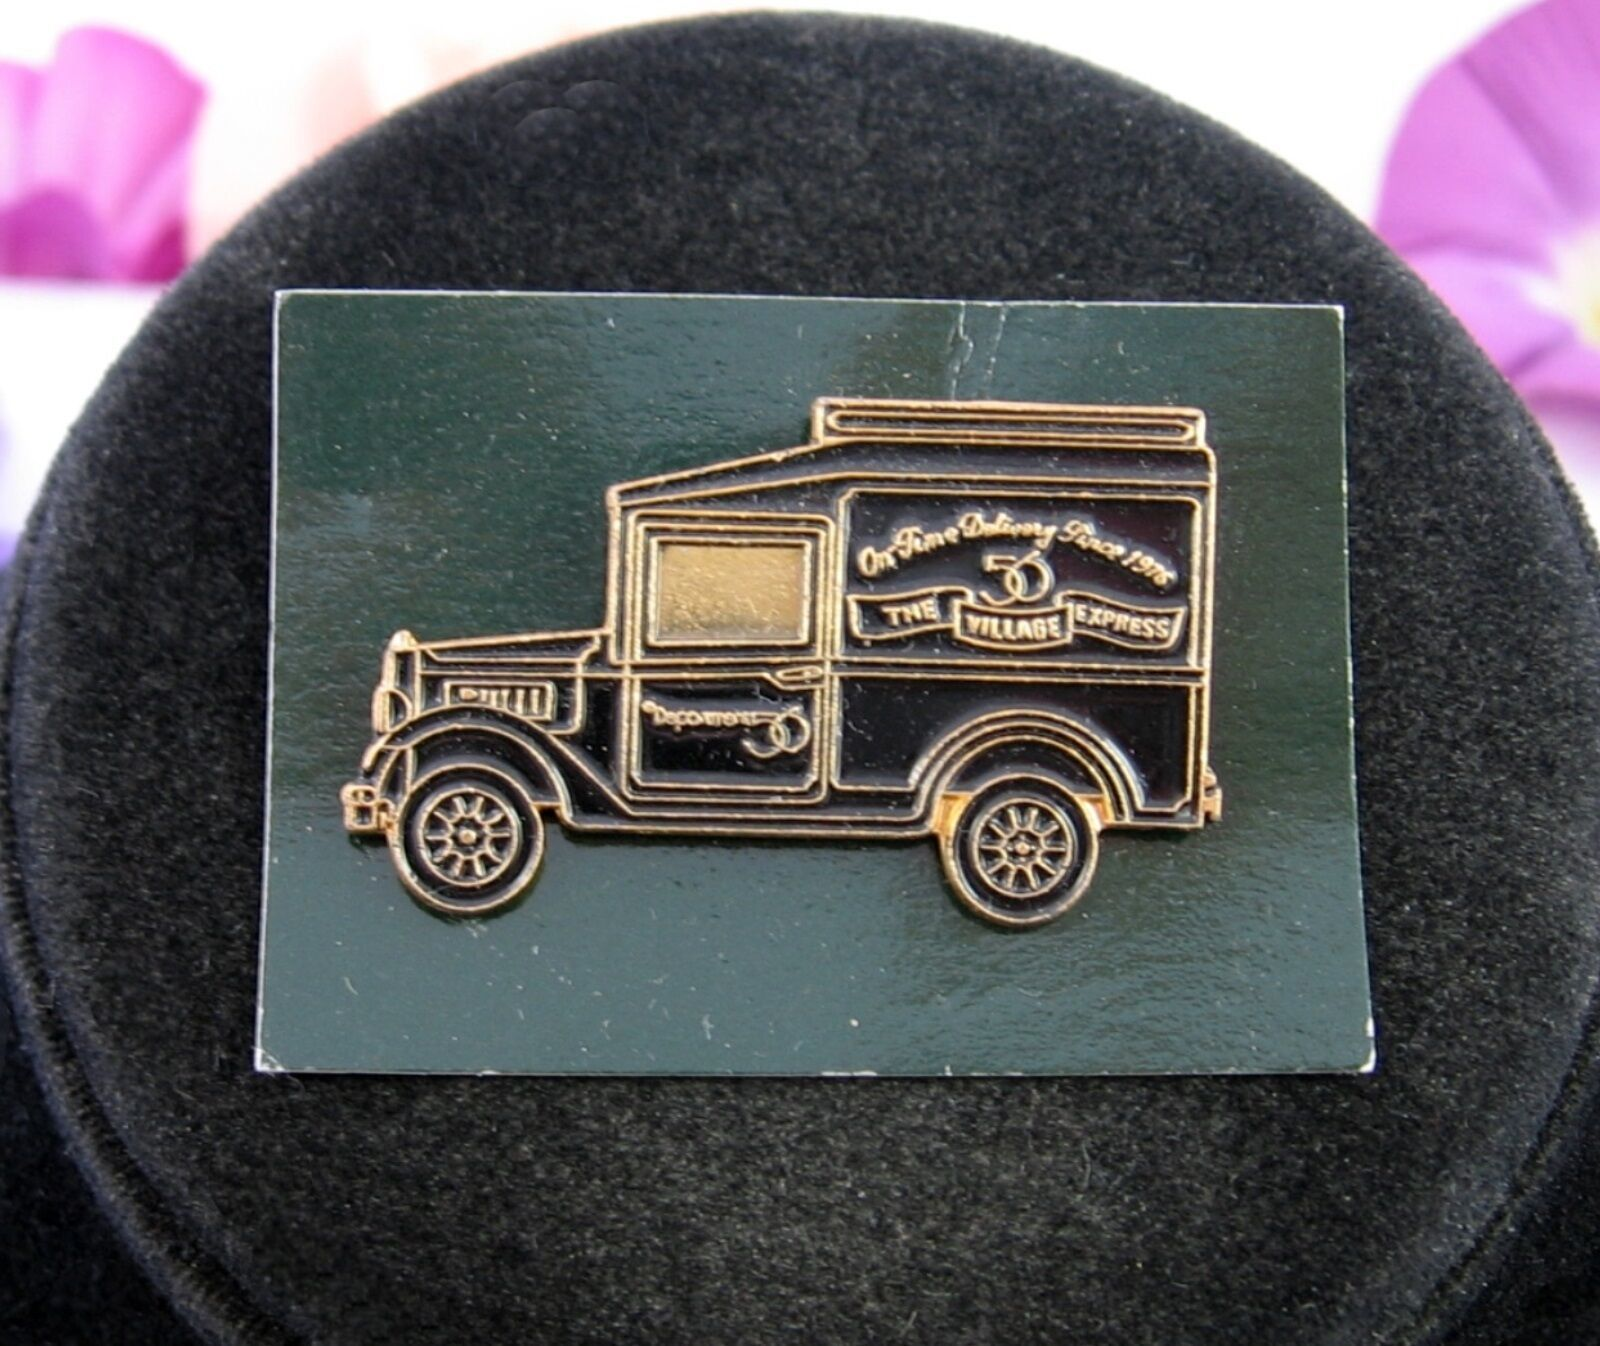 Primary image for TRUCK PIN Department 56 Pinback Vintage Brooch  Card Collectors Exposition 1995